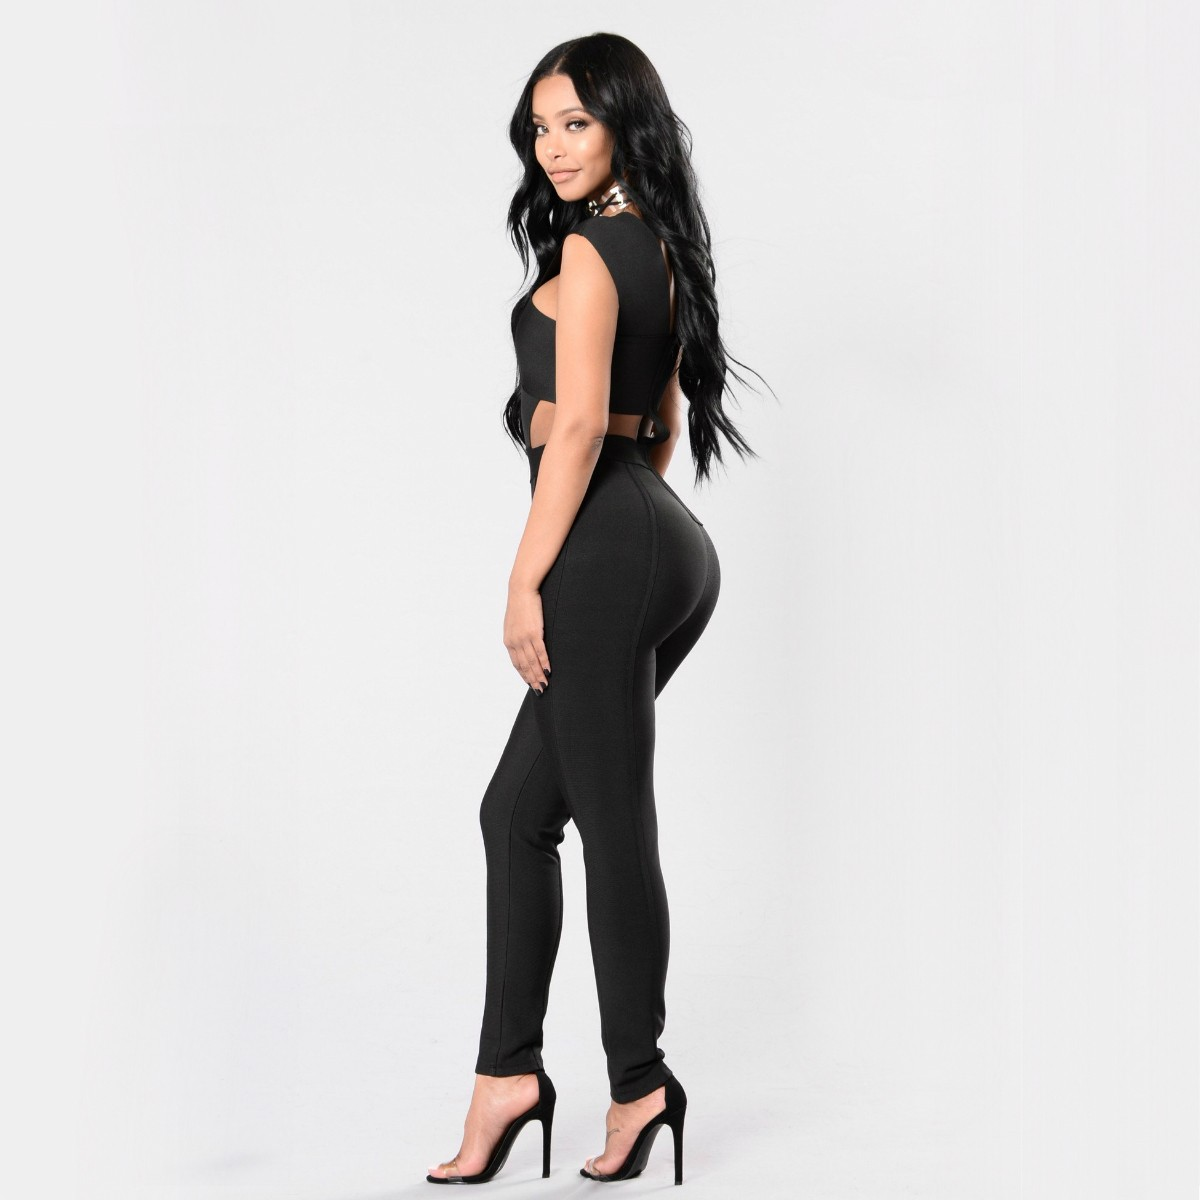 Strapy Sleeveless Crossover Front Cut Out Black High Quality Bandage Jumpsuits SP008-Black